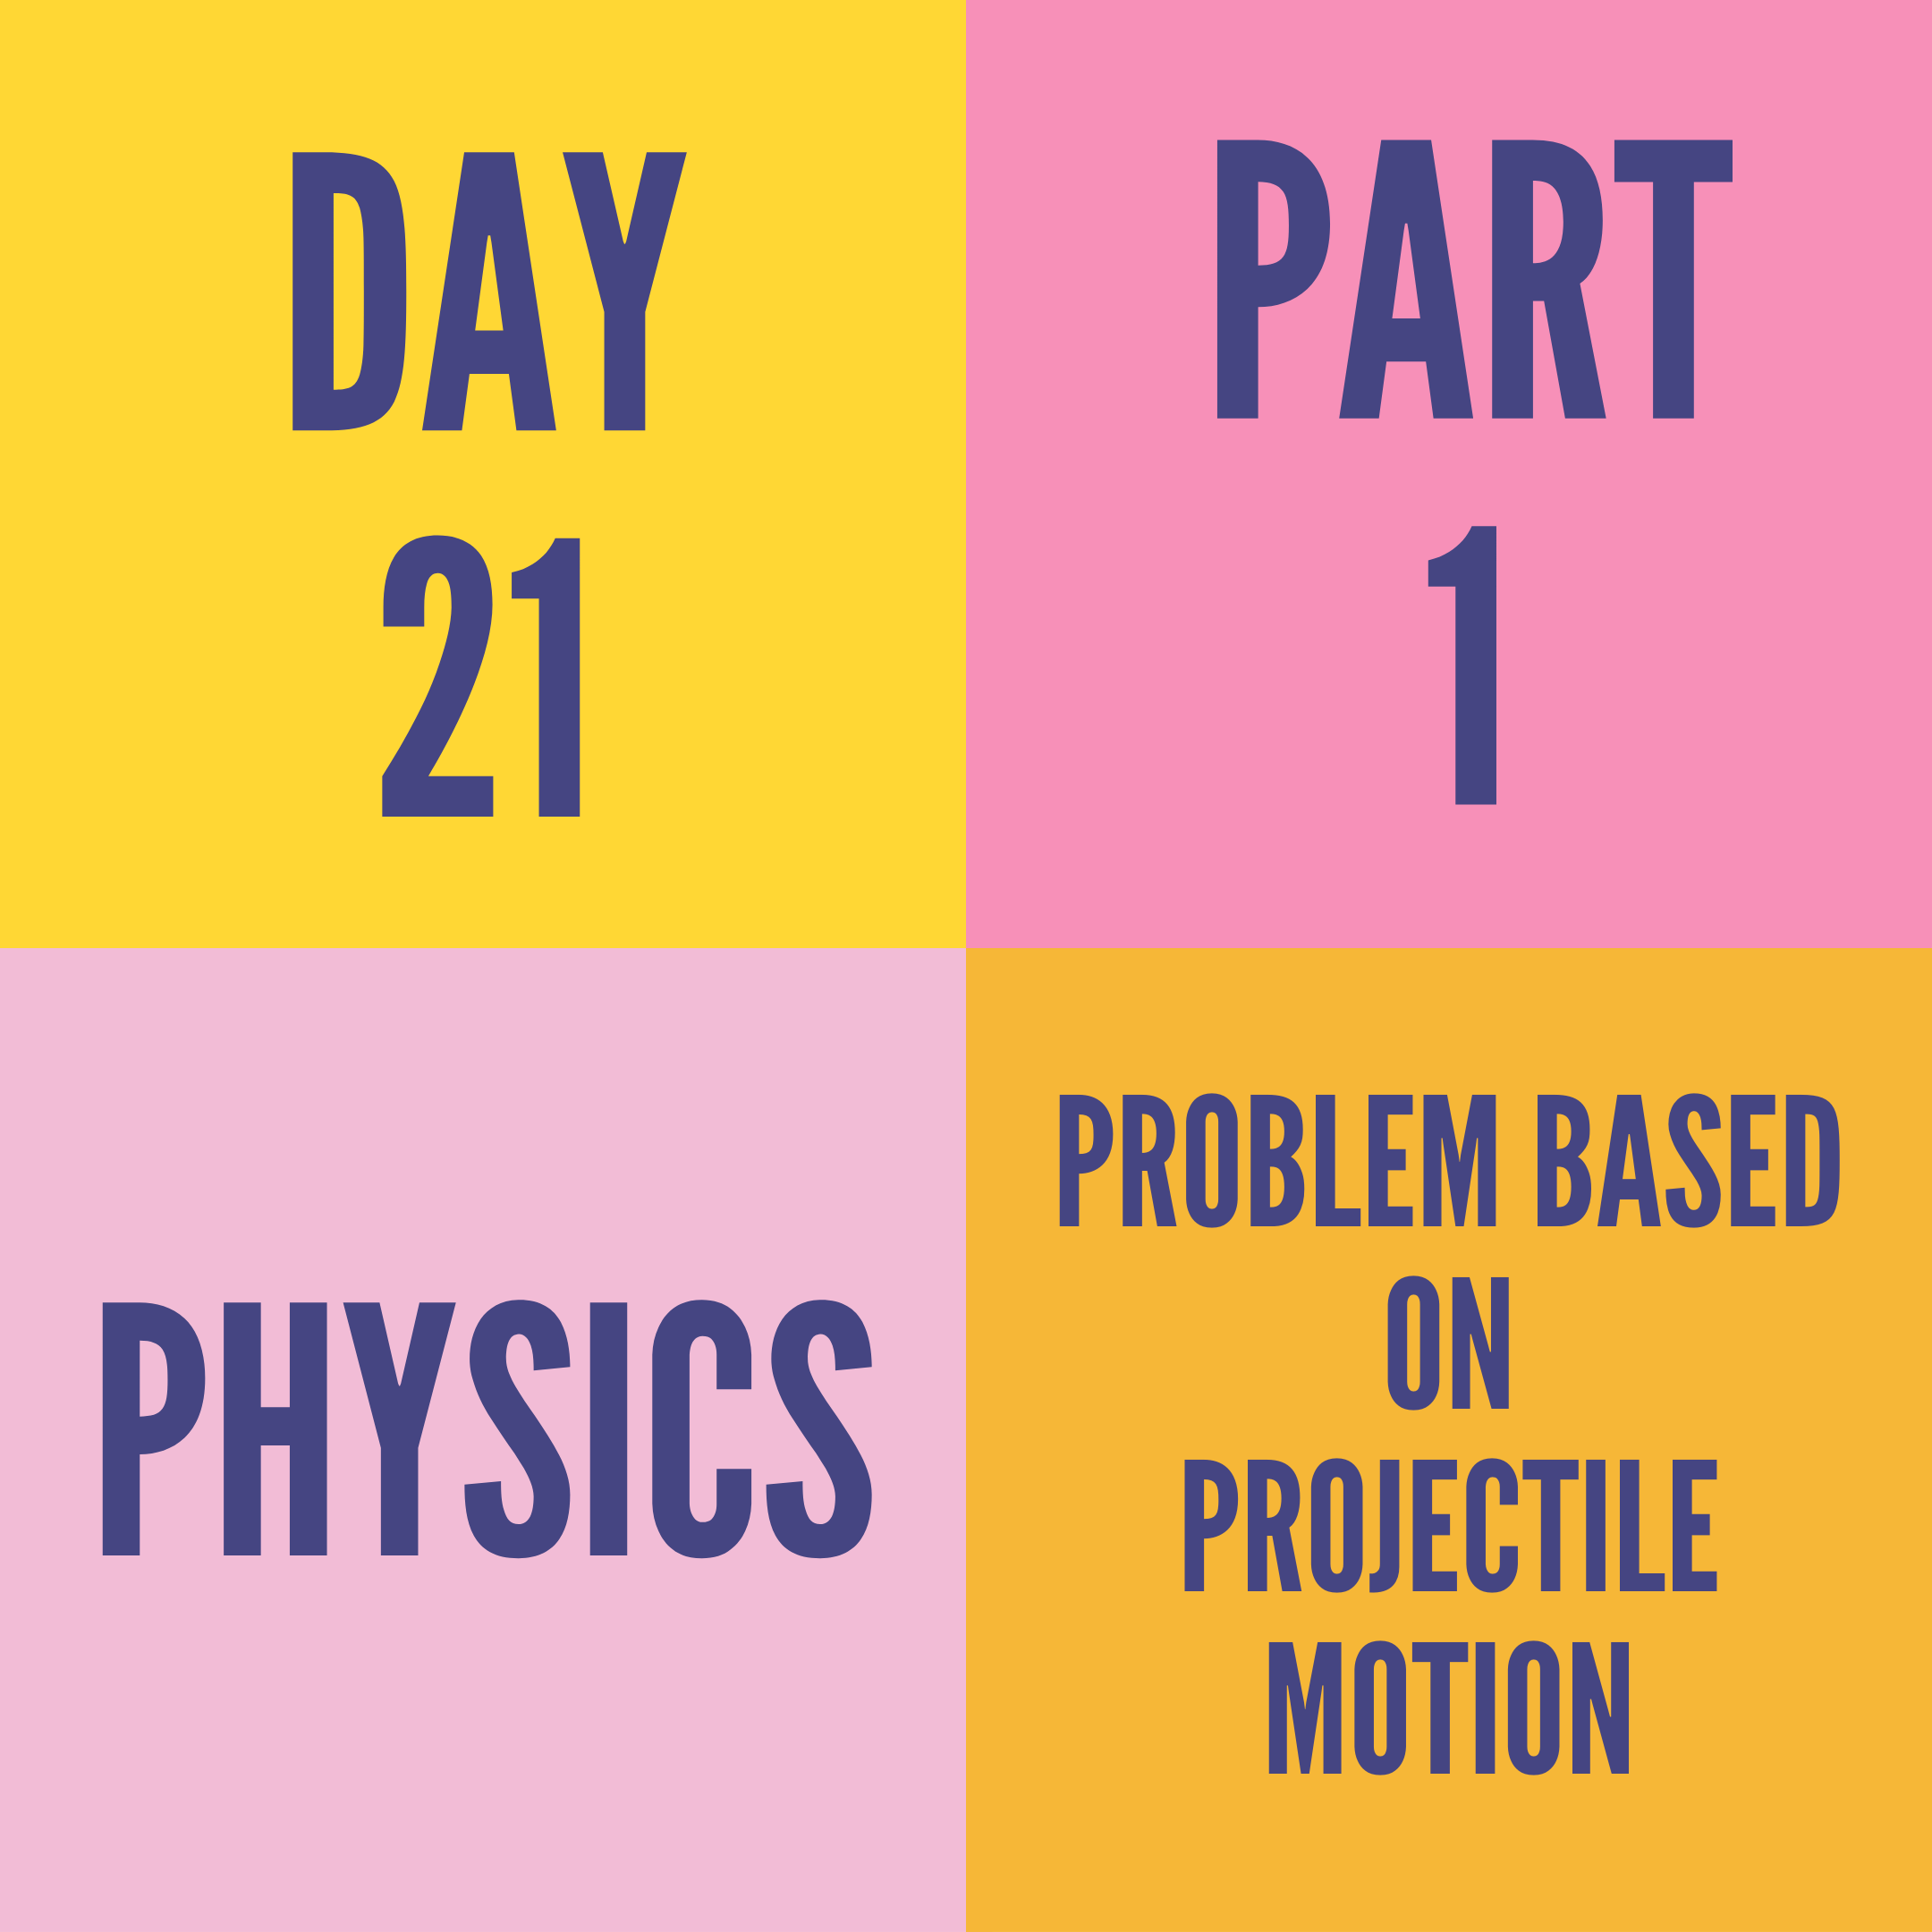 DAY-21 PART-1 PROBLEM BASED ON PROJECTILE MOTION